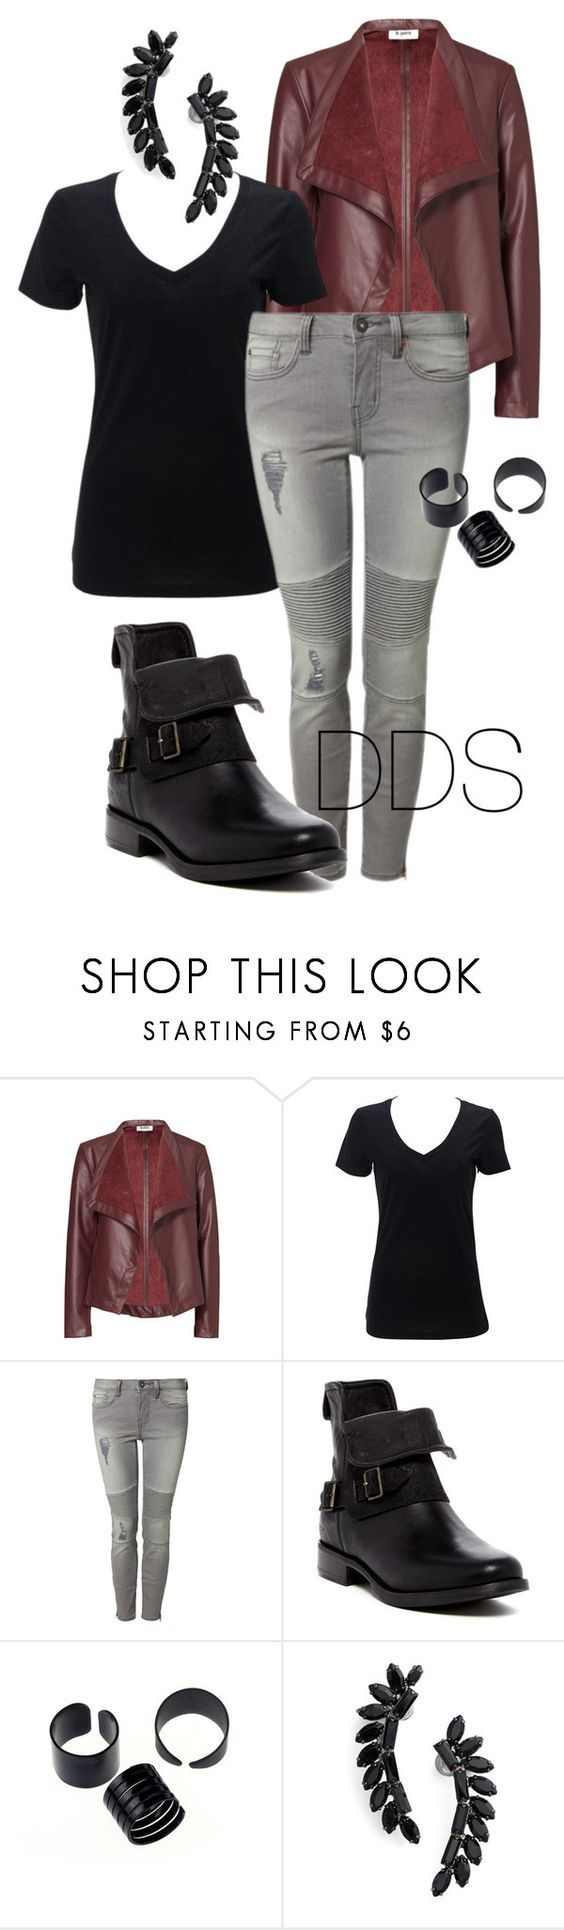 """Moto"" by donna-duggan-sargeant ❤ liked on Polyvore featuring BB Dakota, Dex, UGG Australia and Cristabelle"